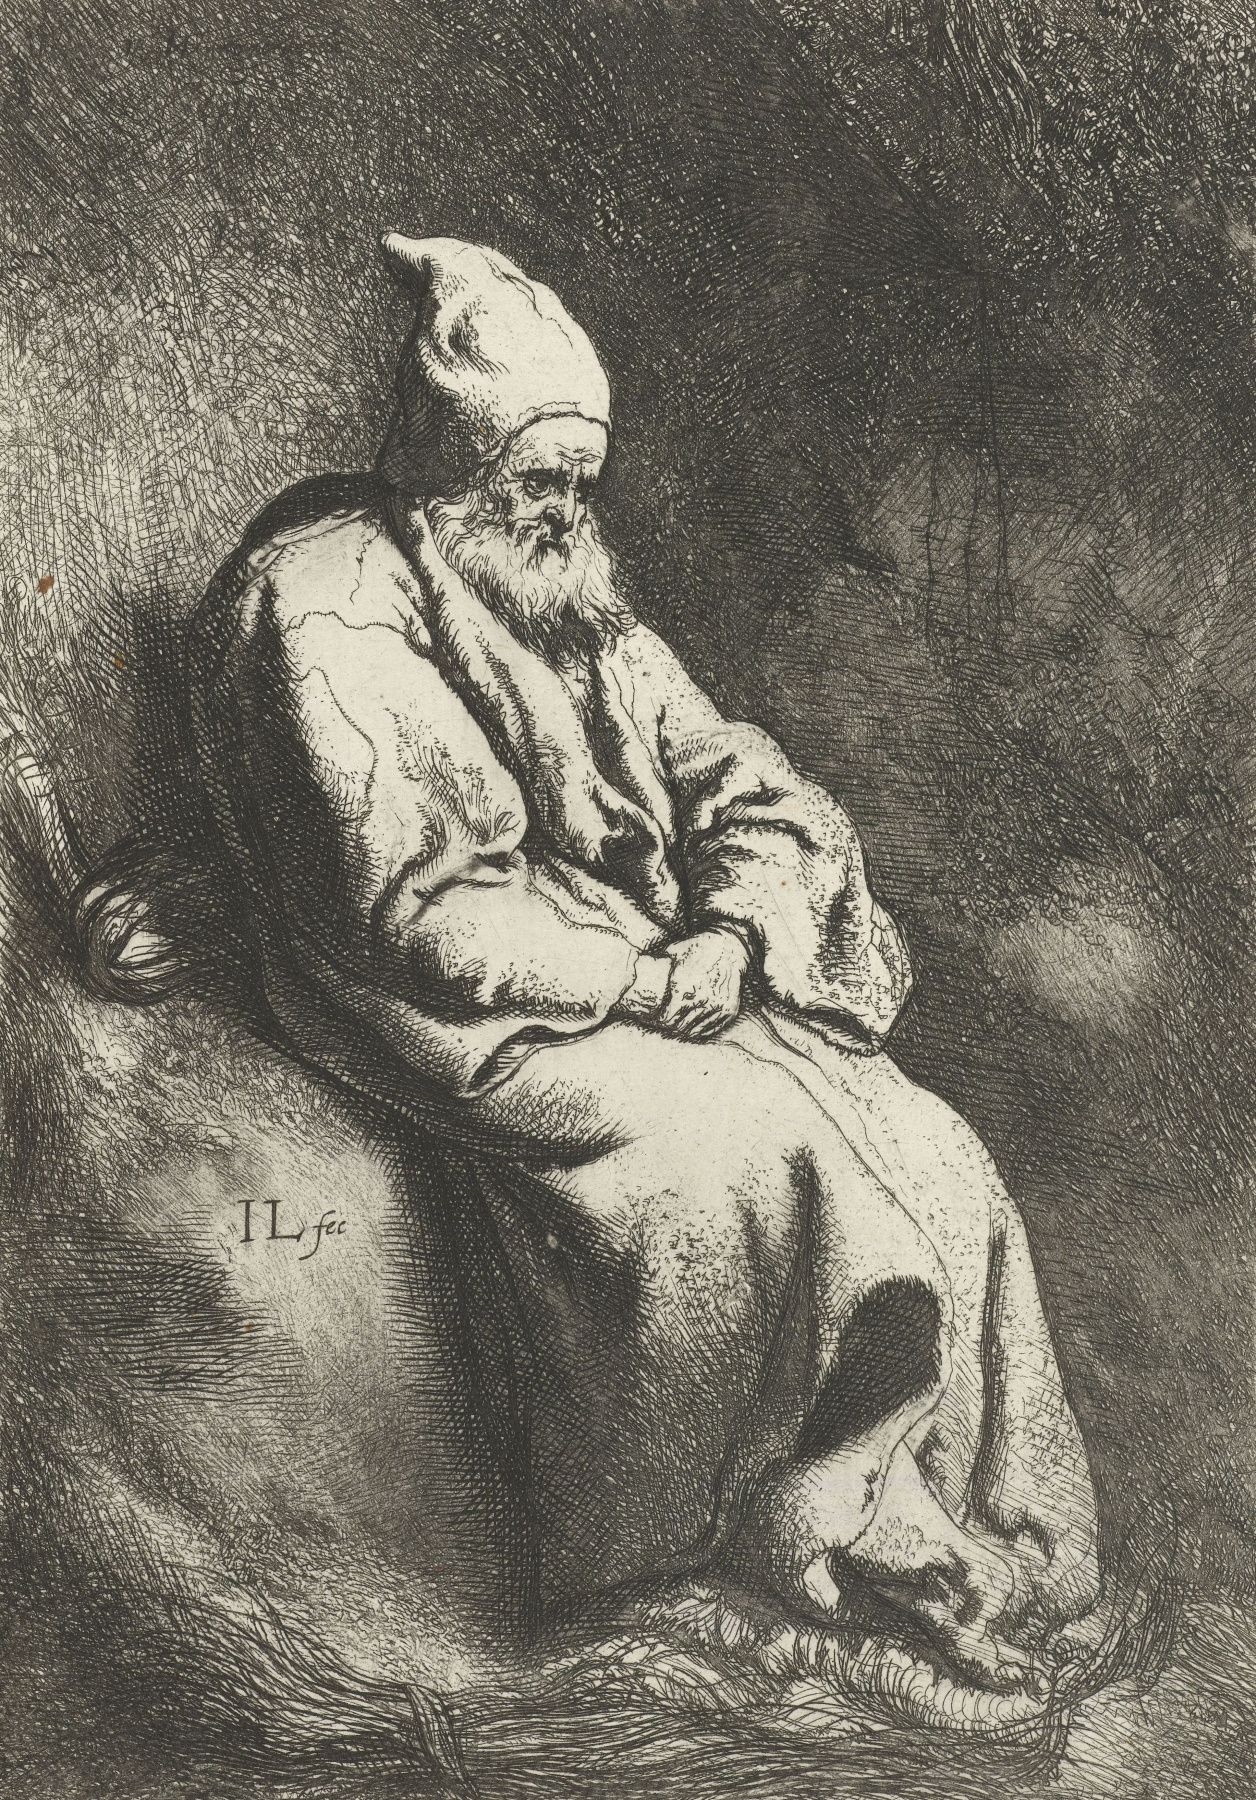 Jan Lievens. The hermit in the cave